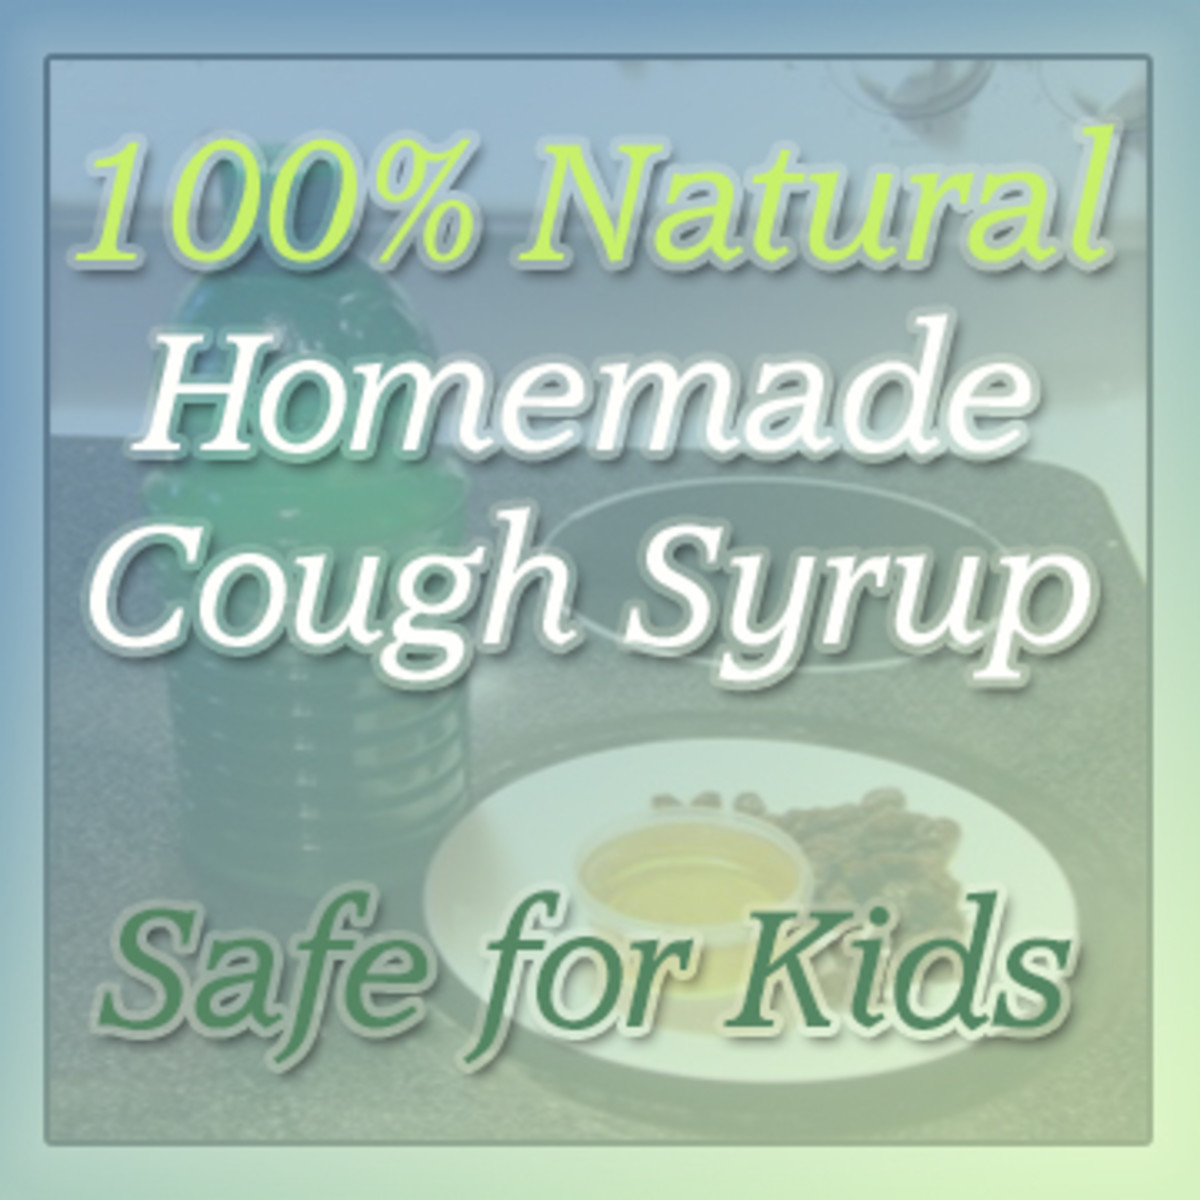 Homemade Cough Syrup Safe for Kids